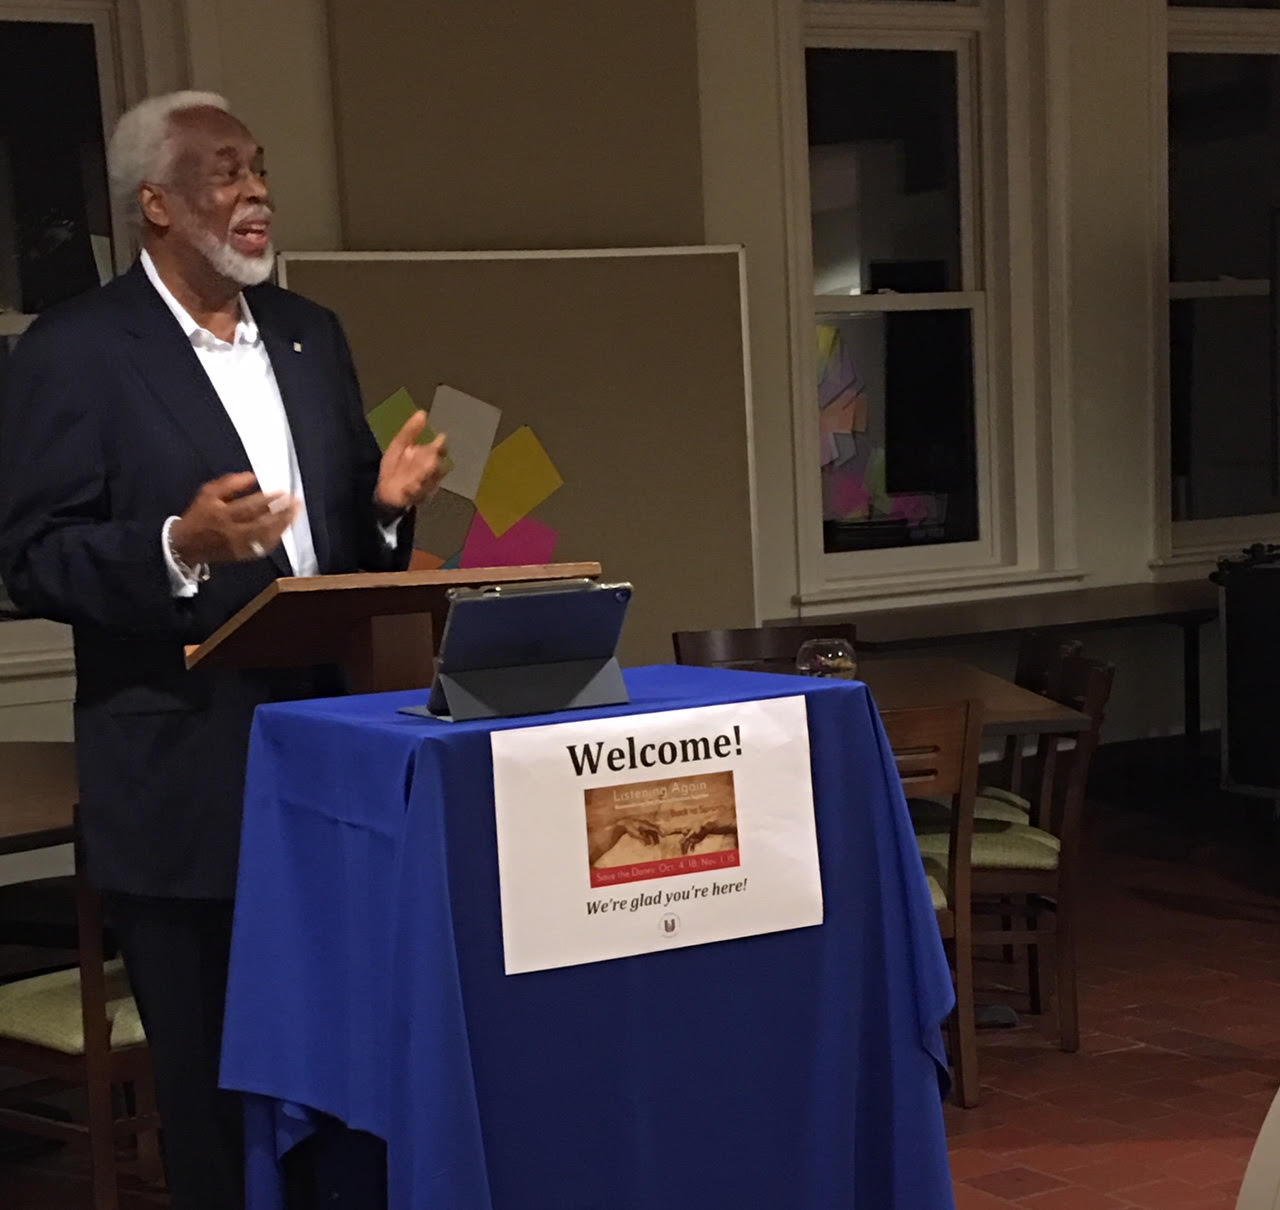 Dr. Leonard Edloe speaks at a Dismantling Racism Ministries event about building community in the face of deep wounds to common humanity and connection to God's creation.